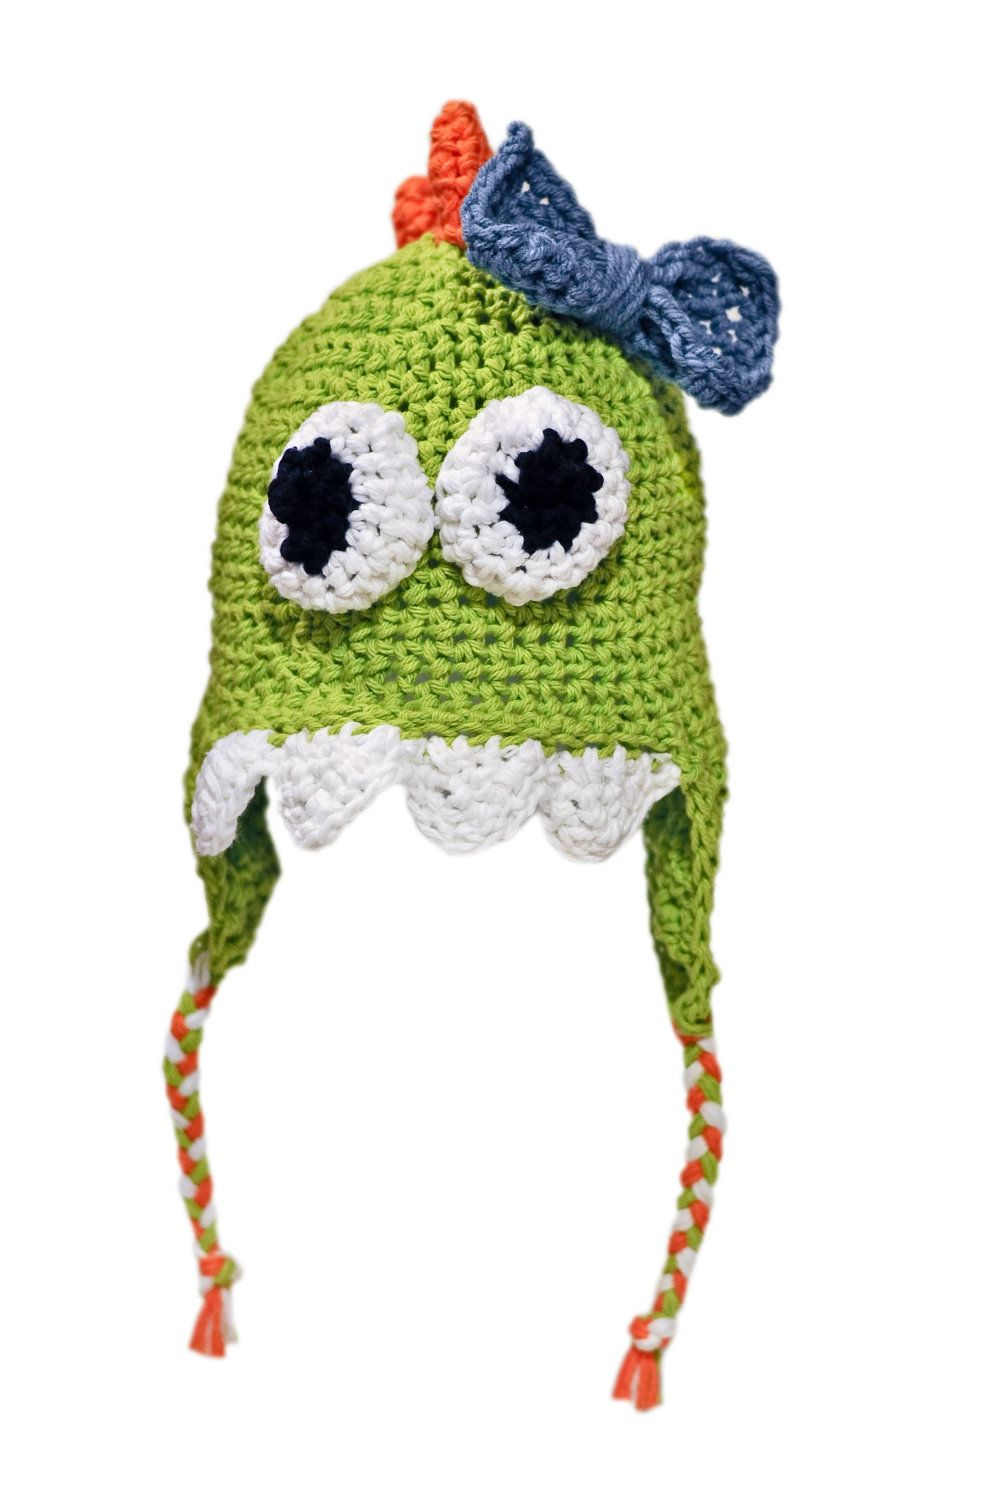 Green Crochet Dinosaur Hat for Boys and Girls, Made to Order. $25.00 ...